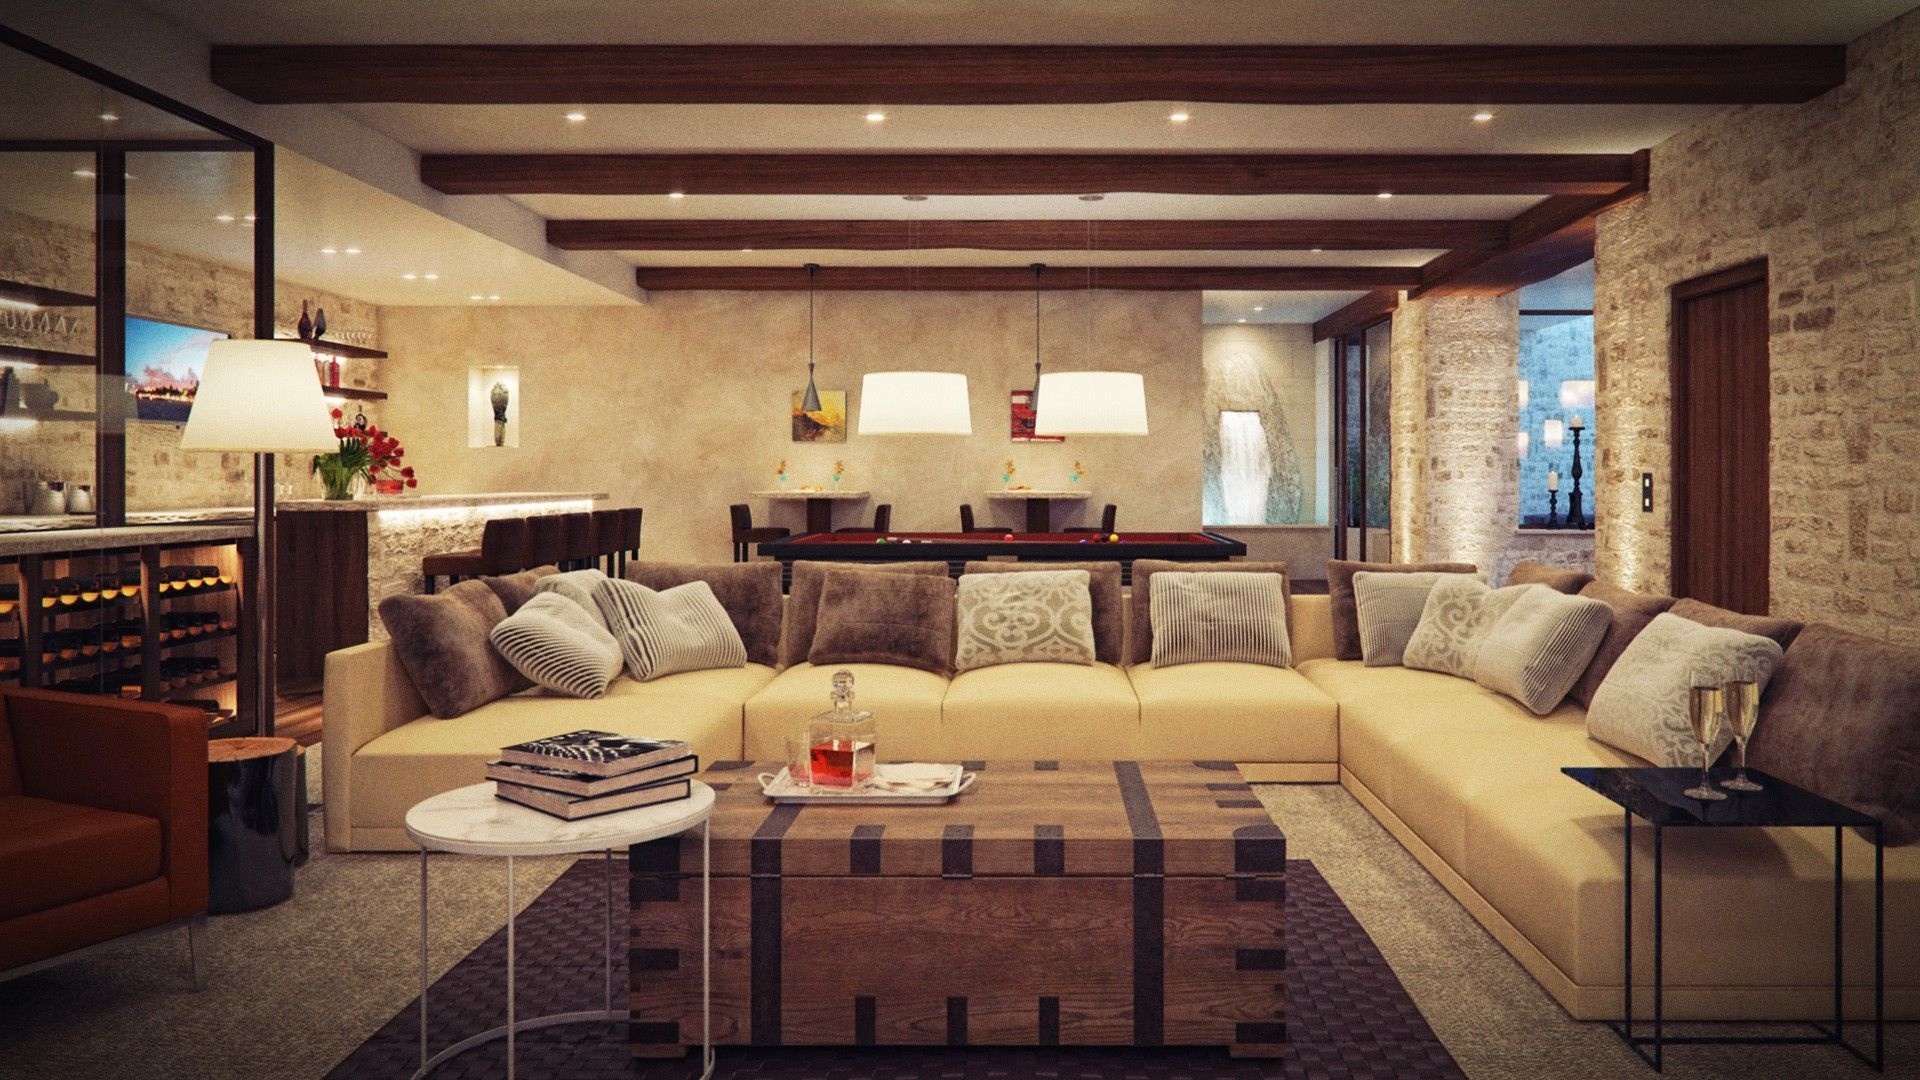 Rustic And Modern Living Room Classy Rustic Living Room Interior With Modern Elements